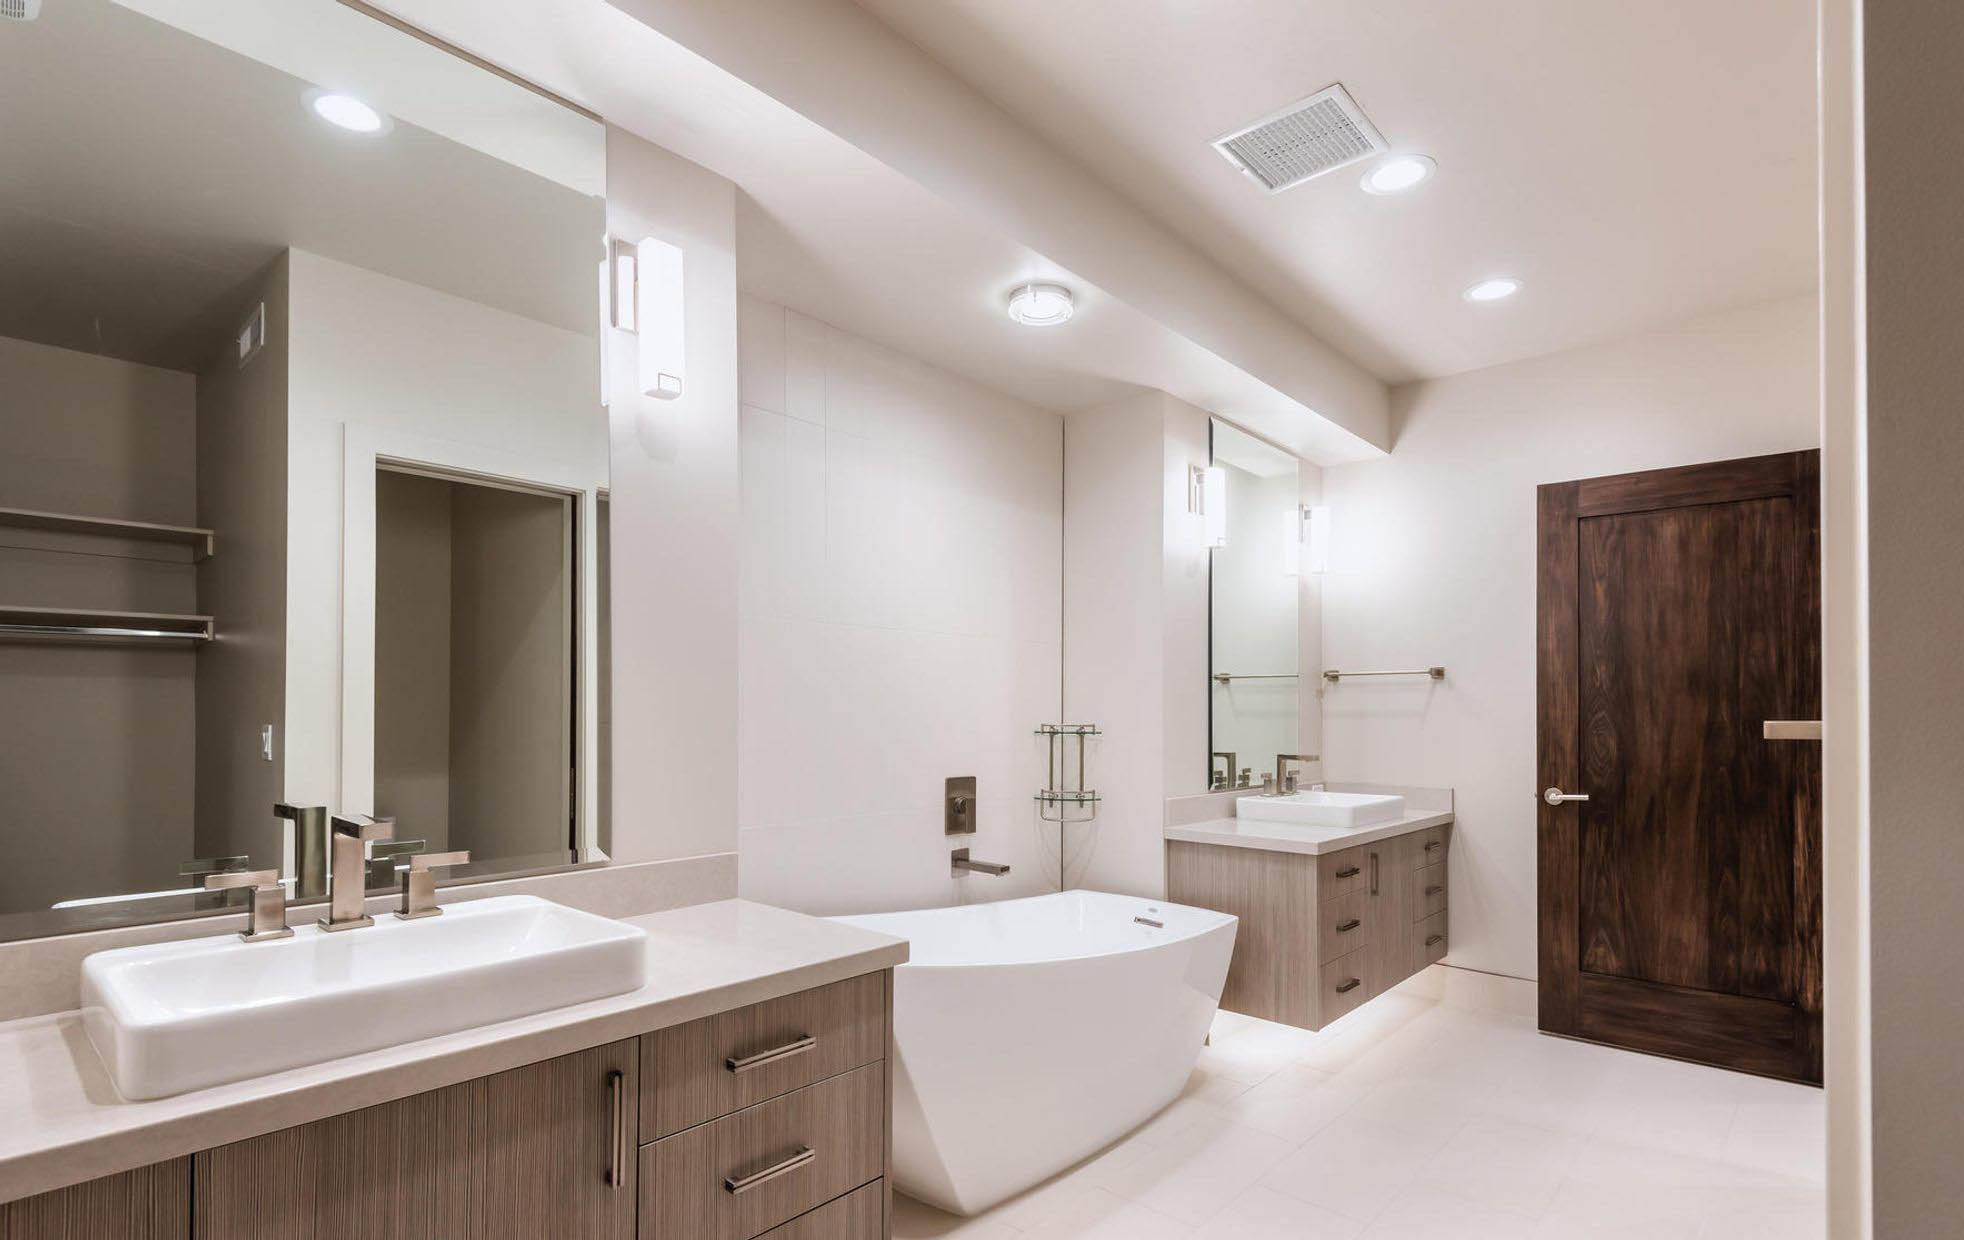 Modern bathroom design ideas featuring solid wood slab doors with dark stain.